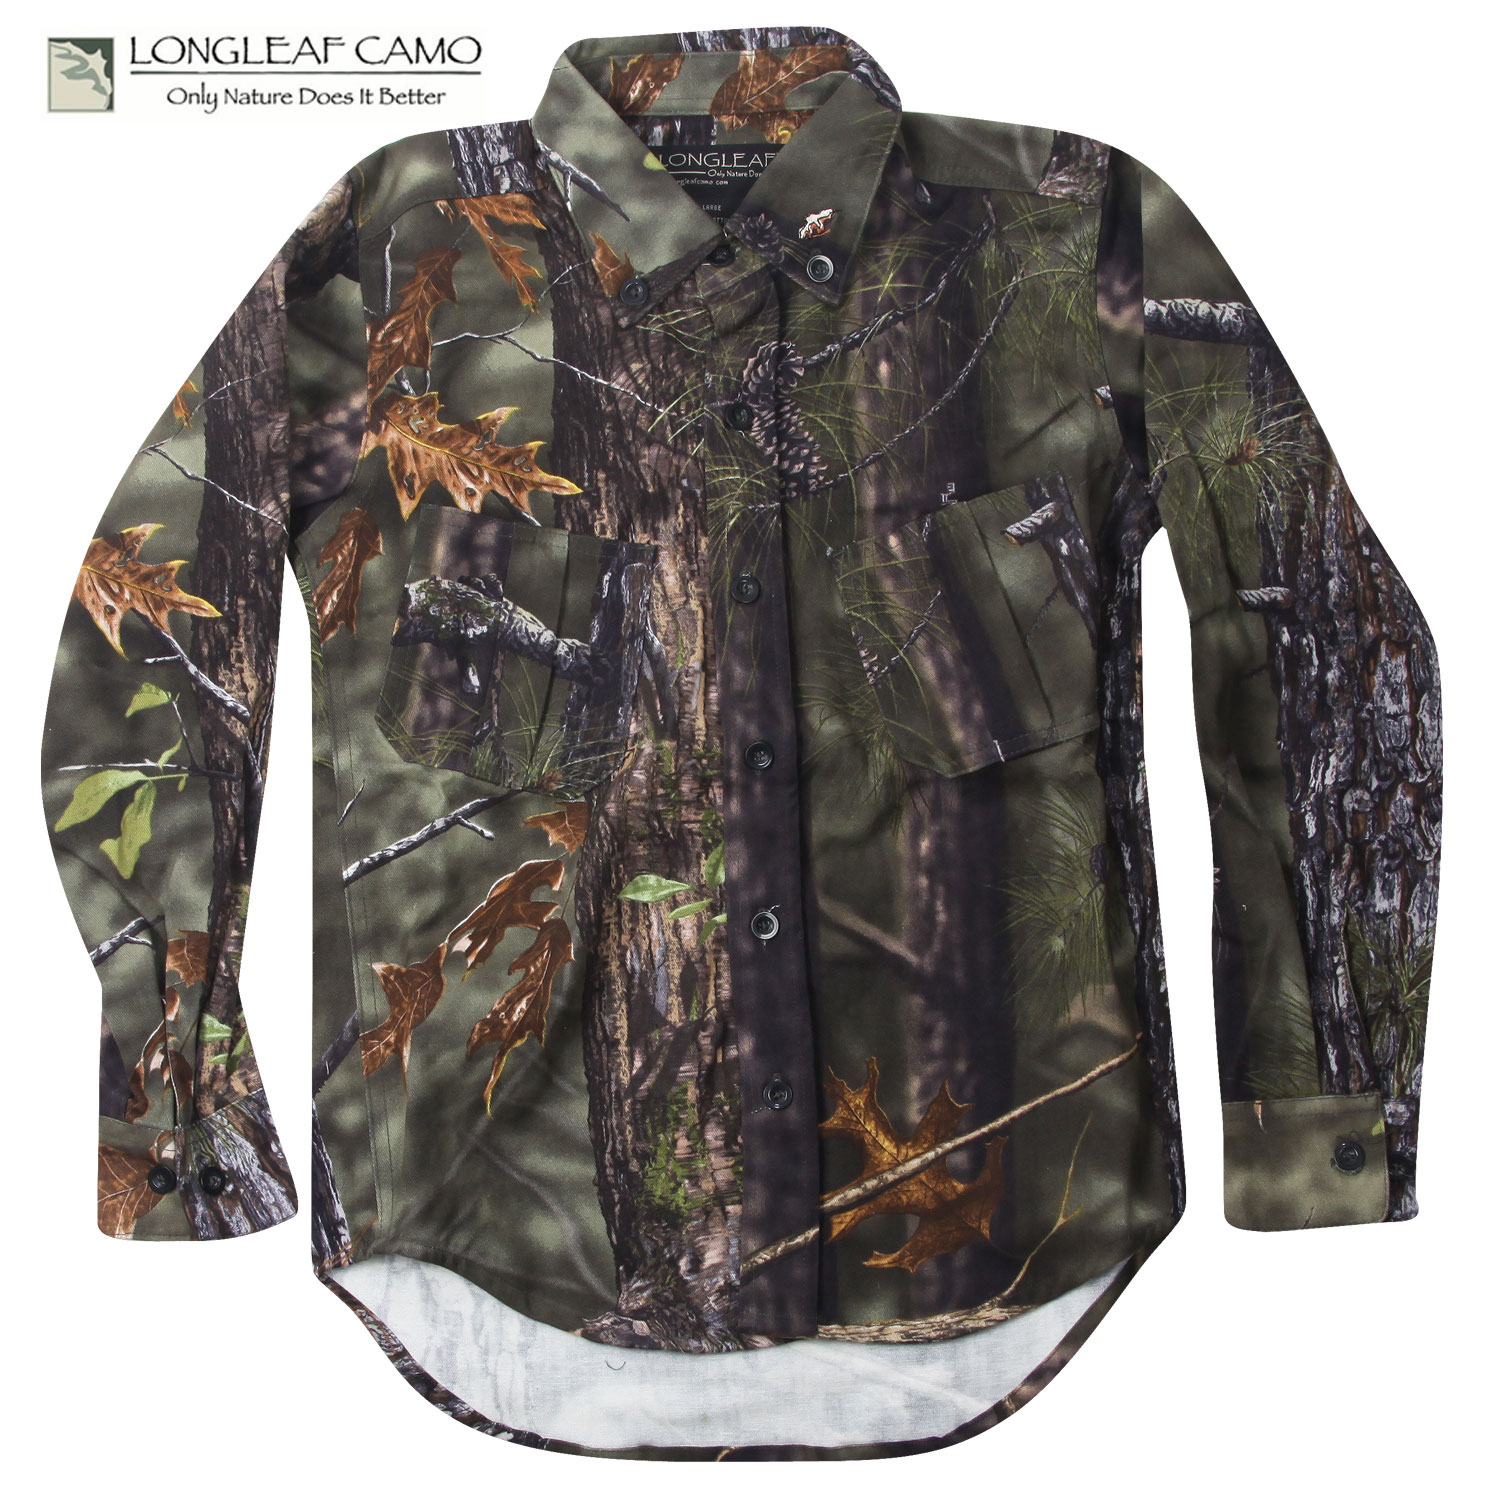 Longleaf Camo Button-Up YOUTH Shirt (L)- AT Green thumbnail